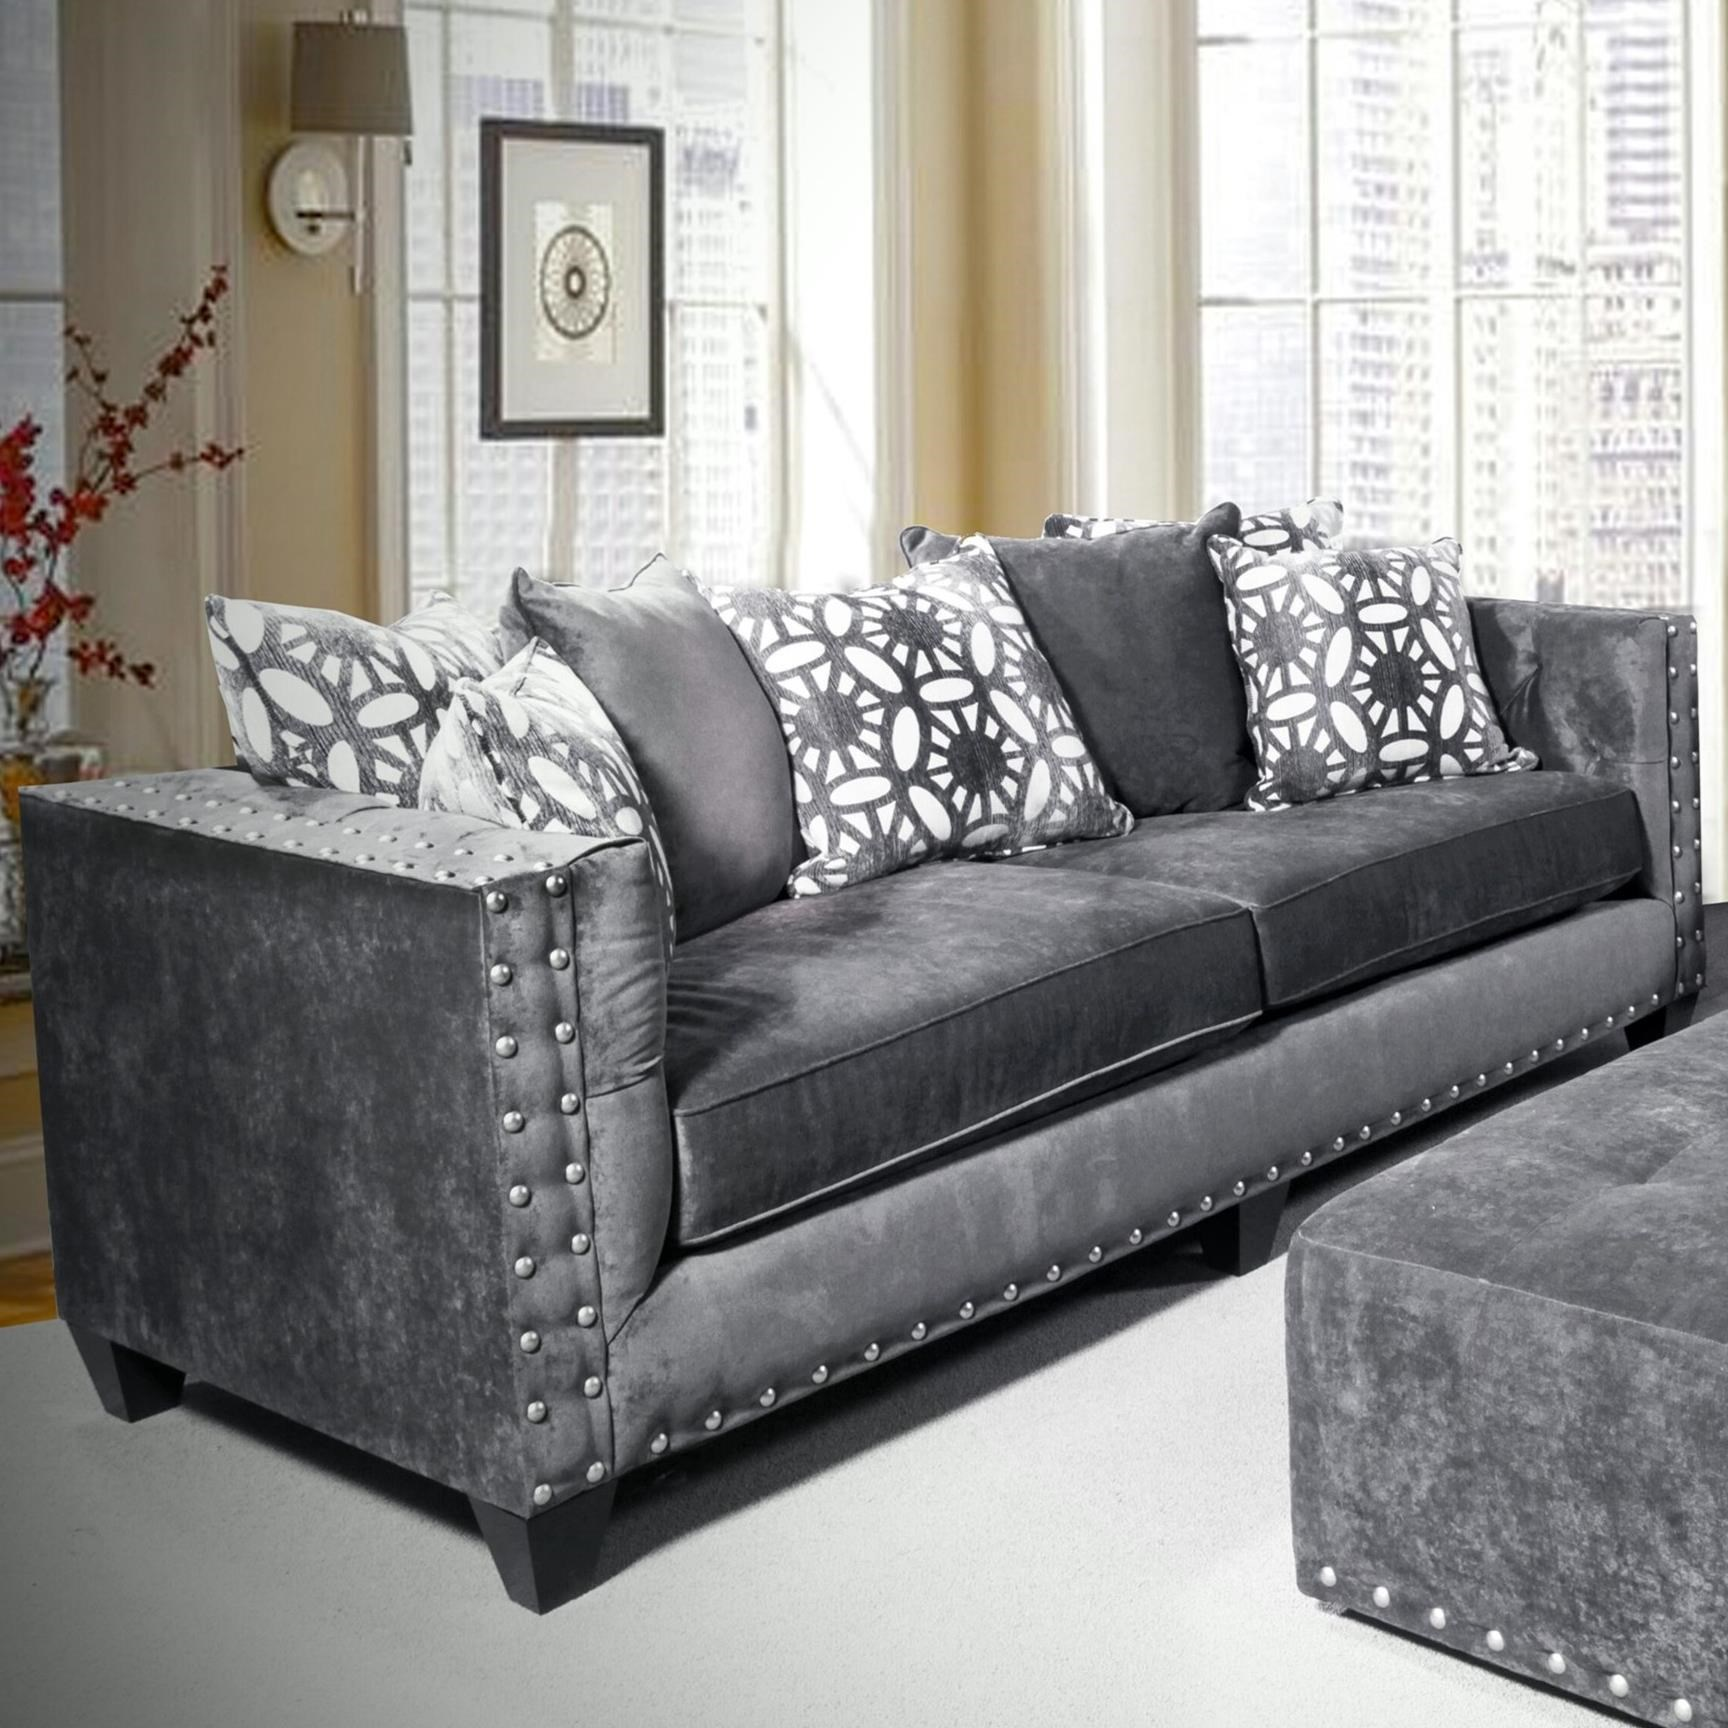 Del Sol Exclusive Roxanne by Robert Michael Upholstered Sofa - Item Number: ROX-SOFA-ASHCHOCOLATE